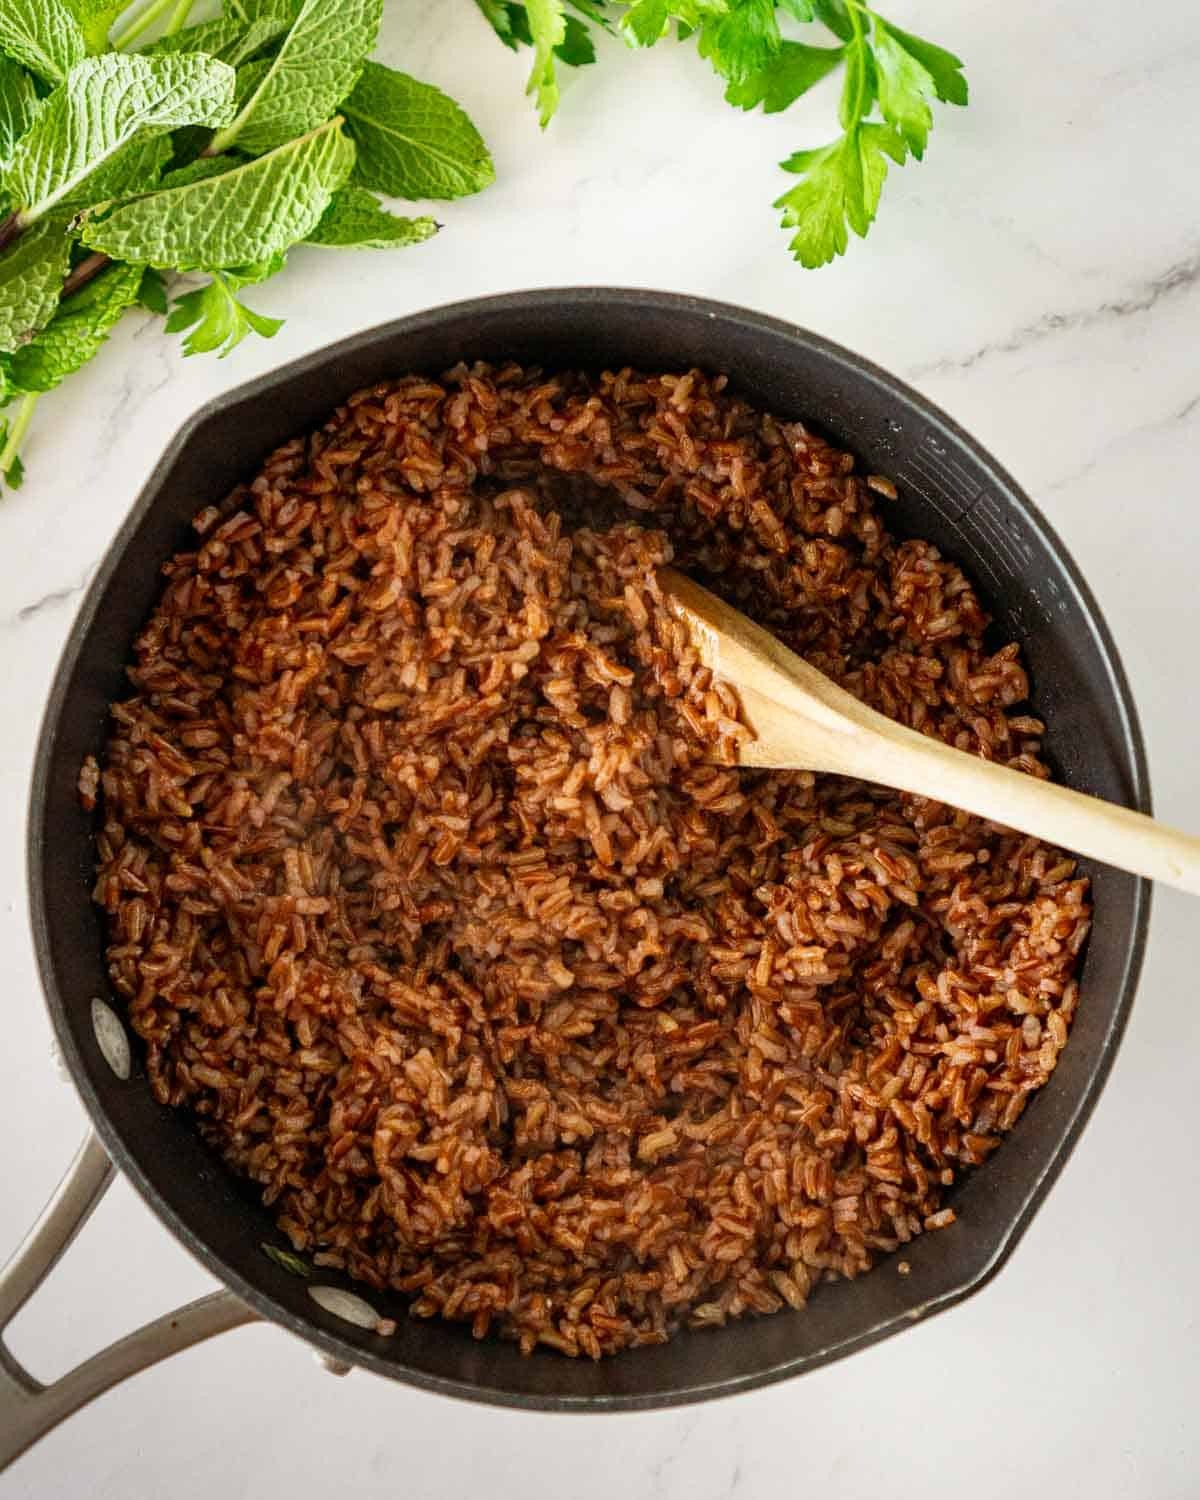 Cooked red rice in a pot.